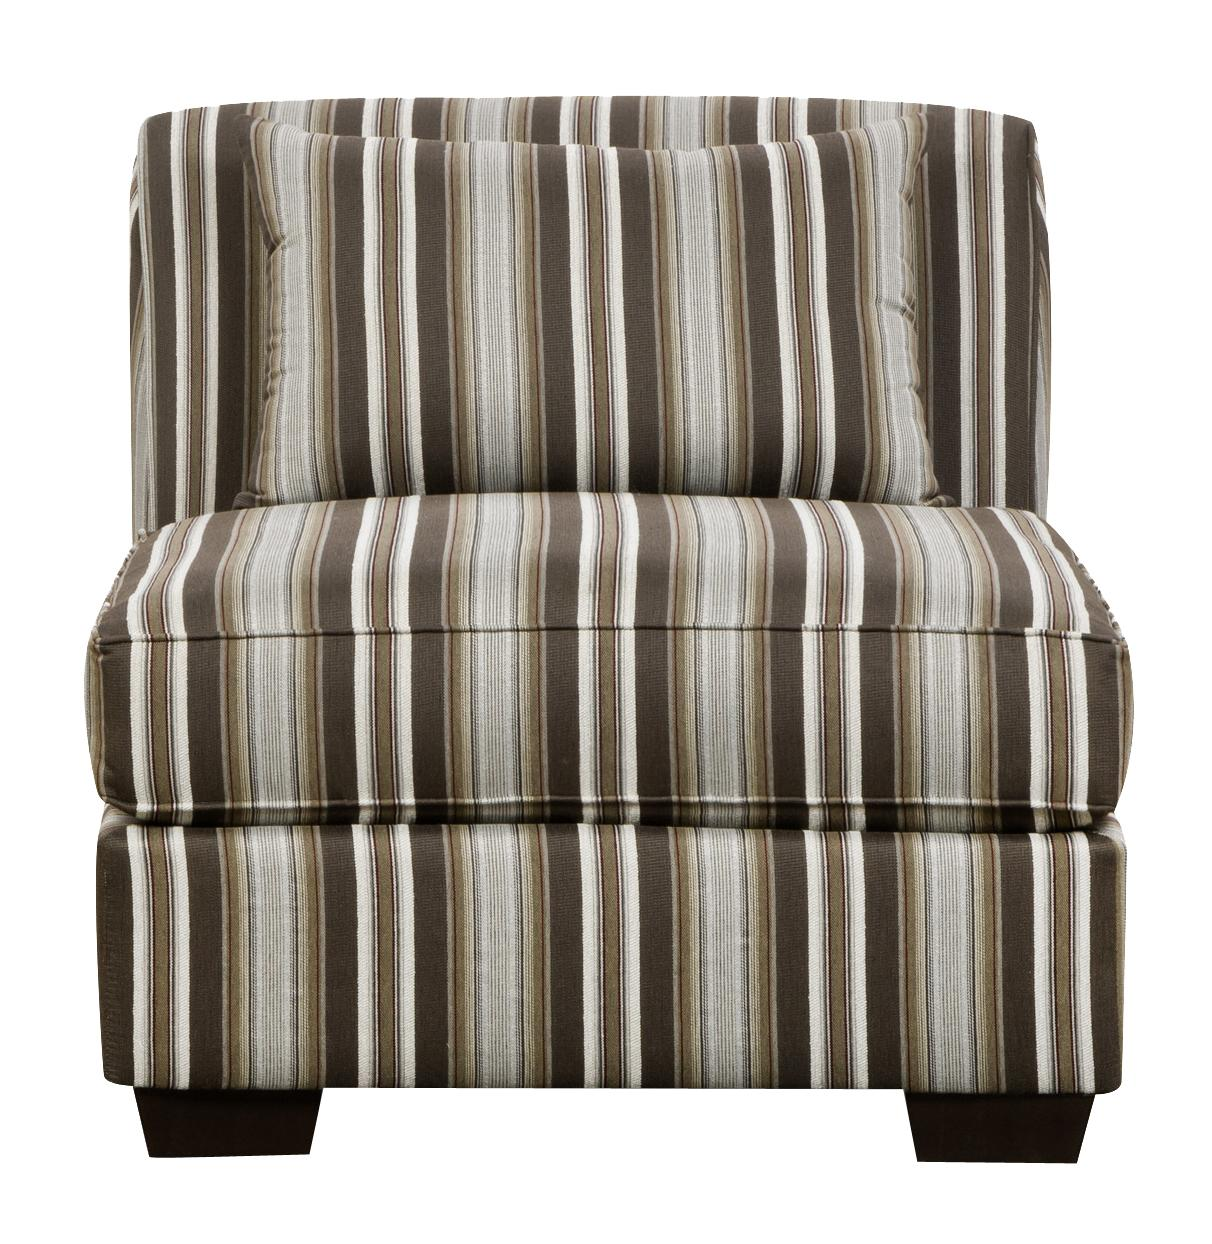 29A0 No Arm Slipper Chair by Corinthian at Story & Lee Furniture